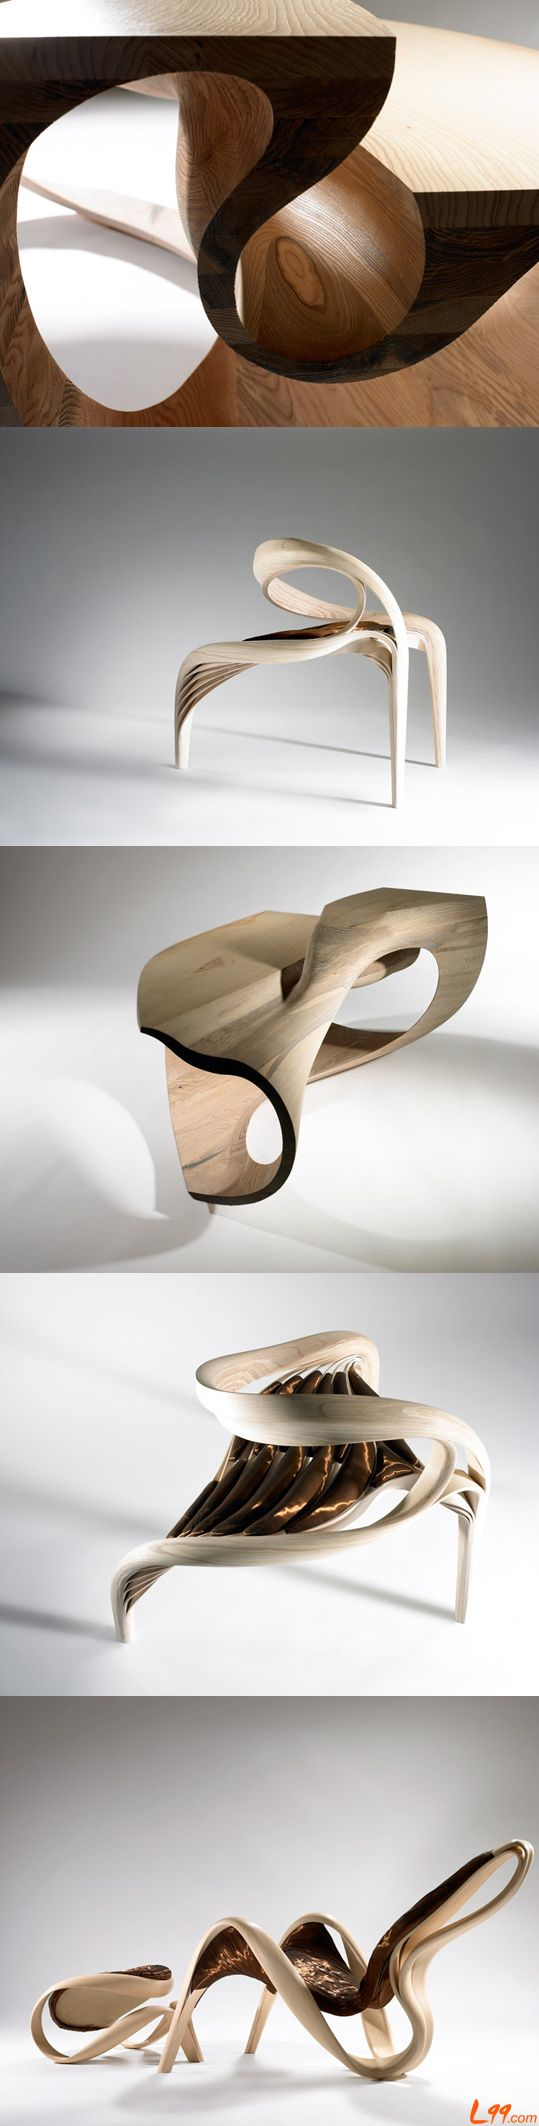 378 Best Images About Wood On Pinterest Sculpture